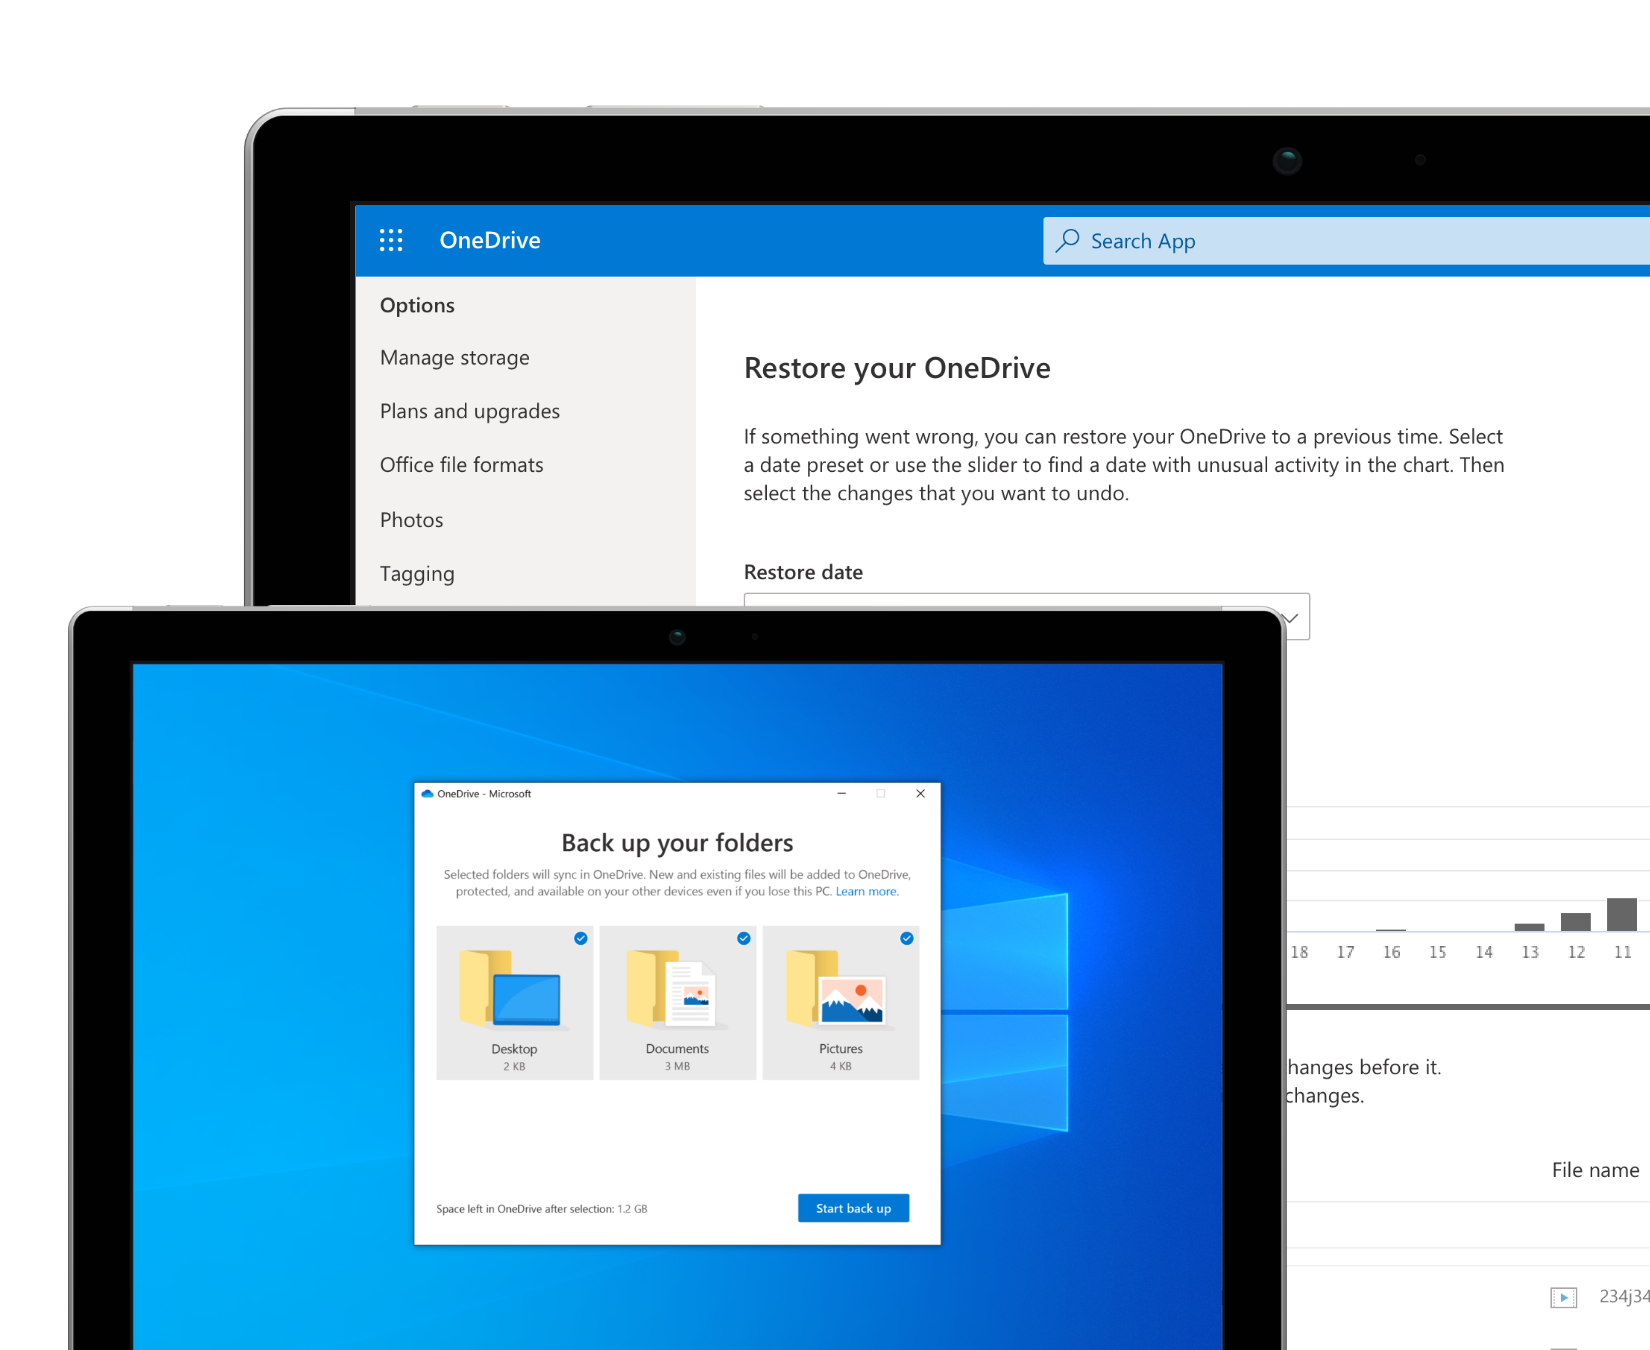 Two device screens showing backup and restore features in OneDrive.